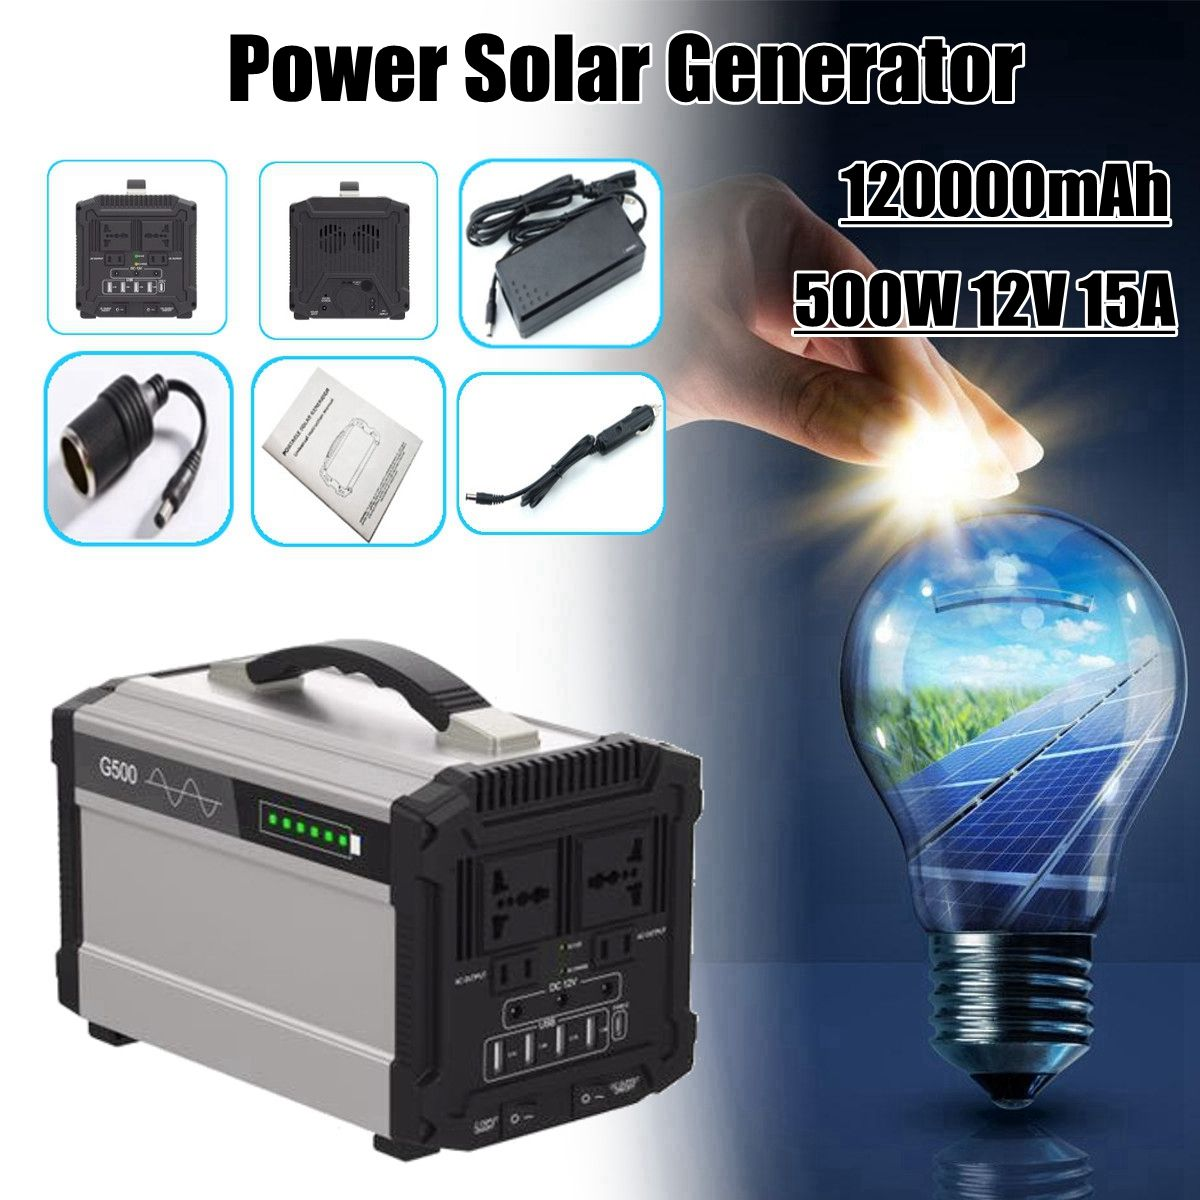 444Wh 120000mAh 500W 12V 15A Inverter Energy Power Storage Home Outdoor Portable Power Solar Generator Faster Charge